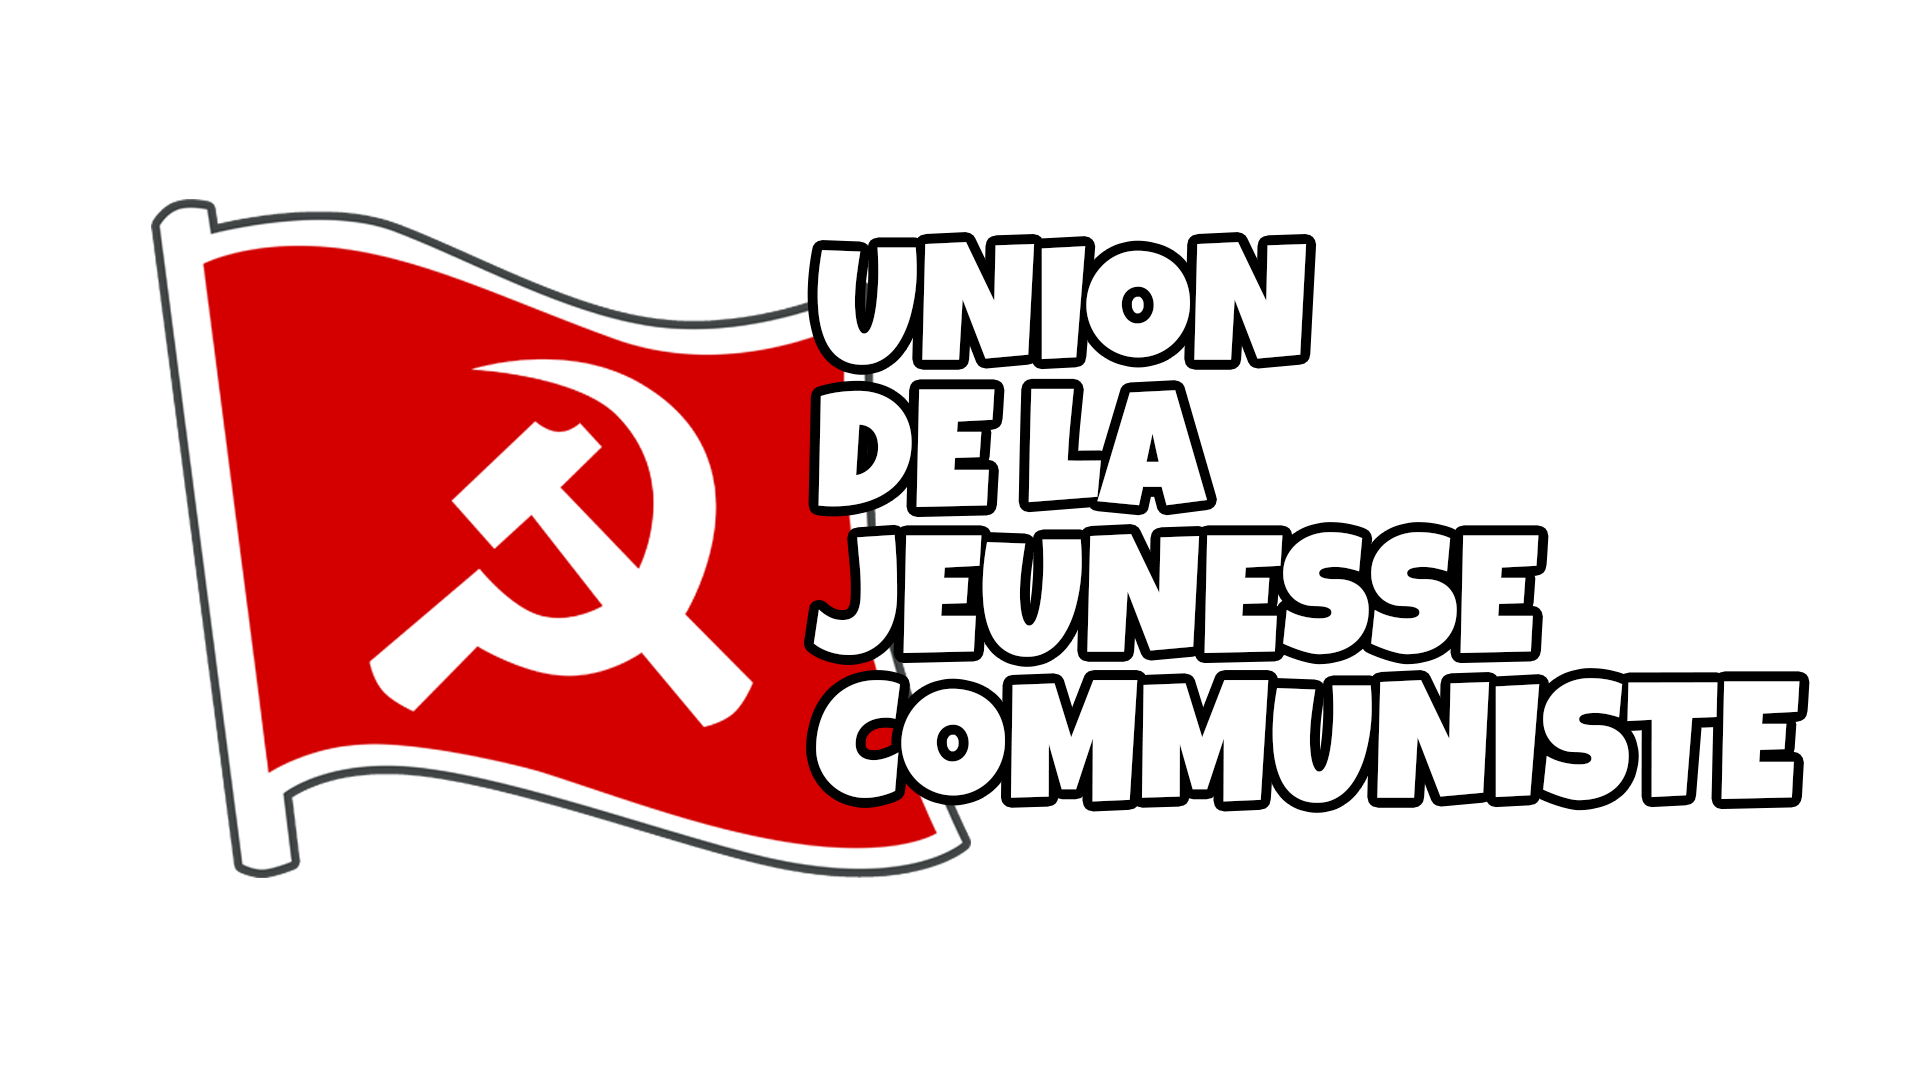 Union de la Jeunesse Communiste